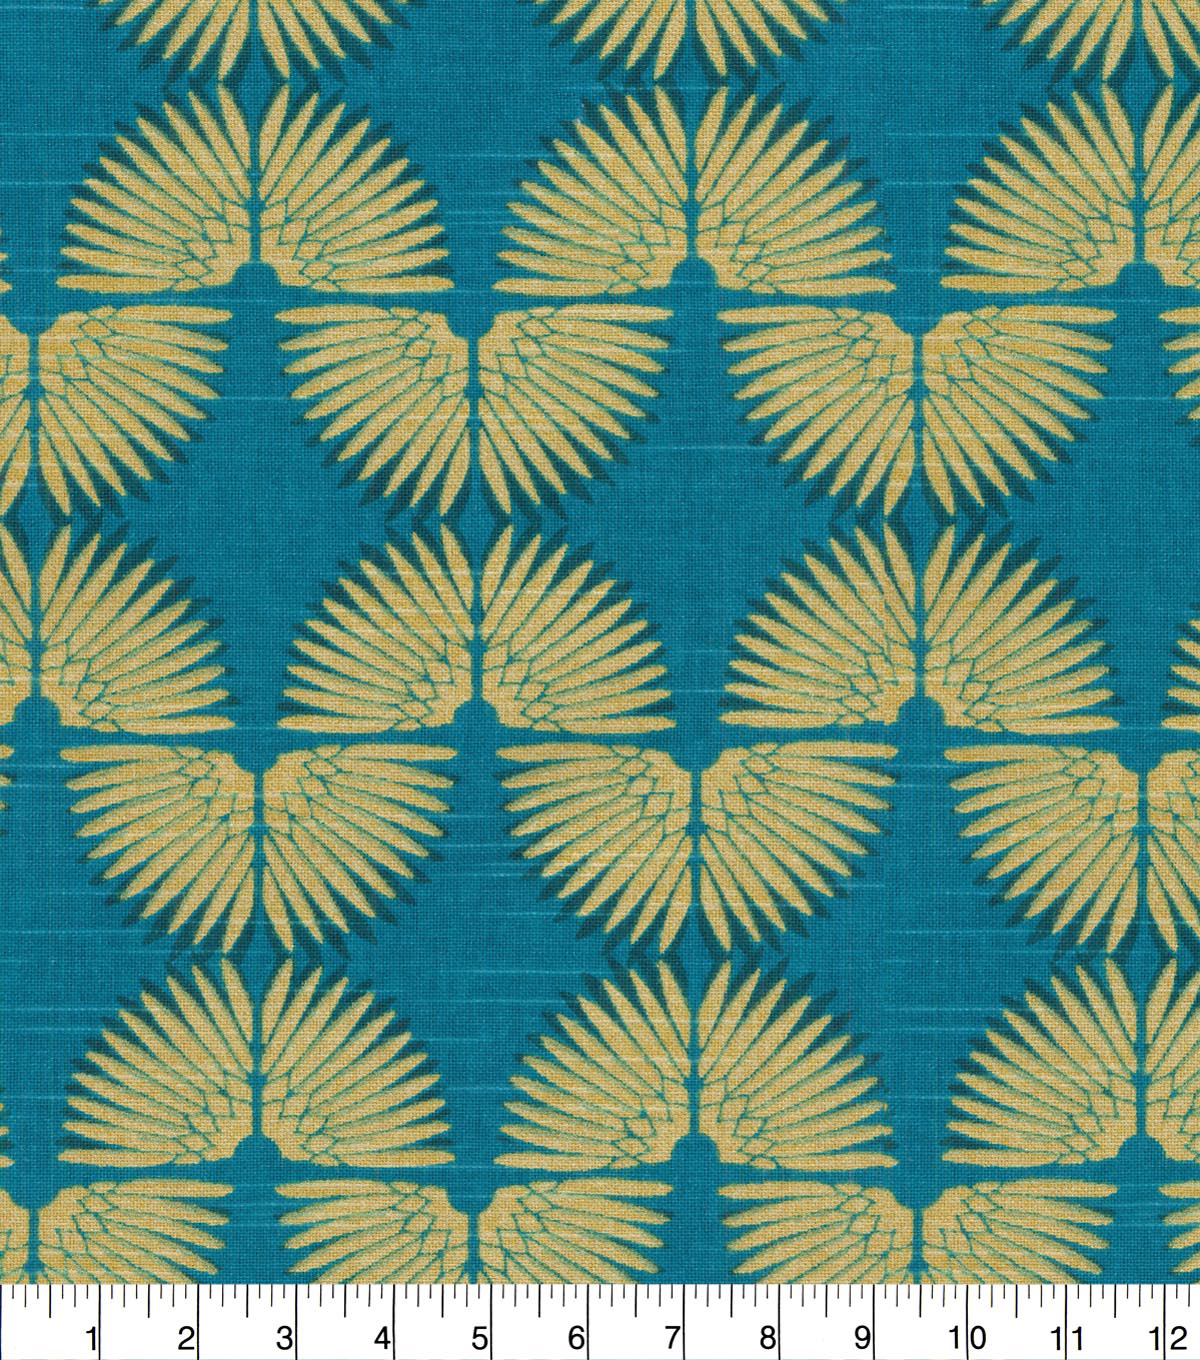 Genevieve Gorder Upholstery Fabric 54\u0027\u0027-Urban Caterpillar on Peacock